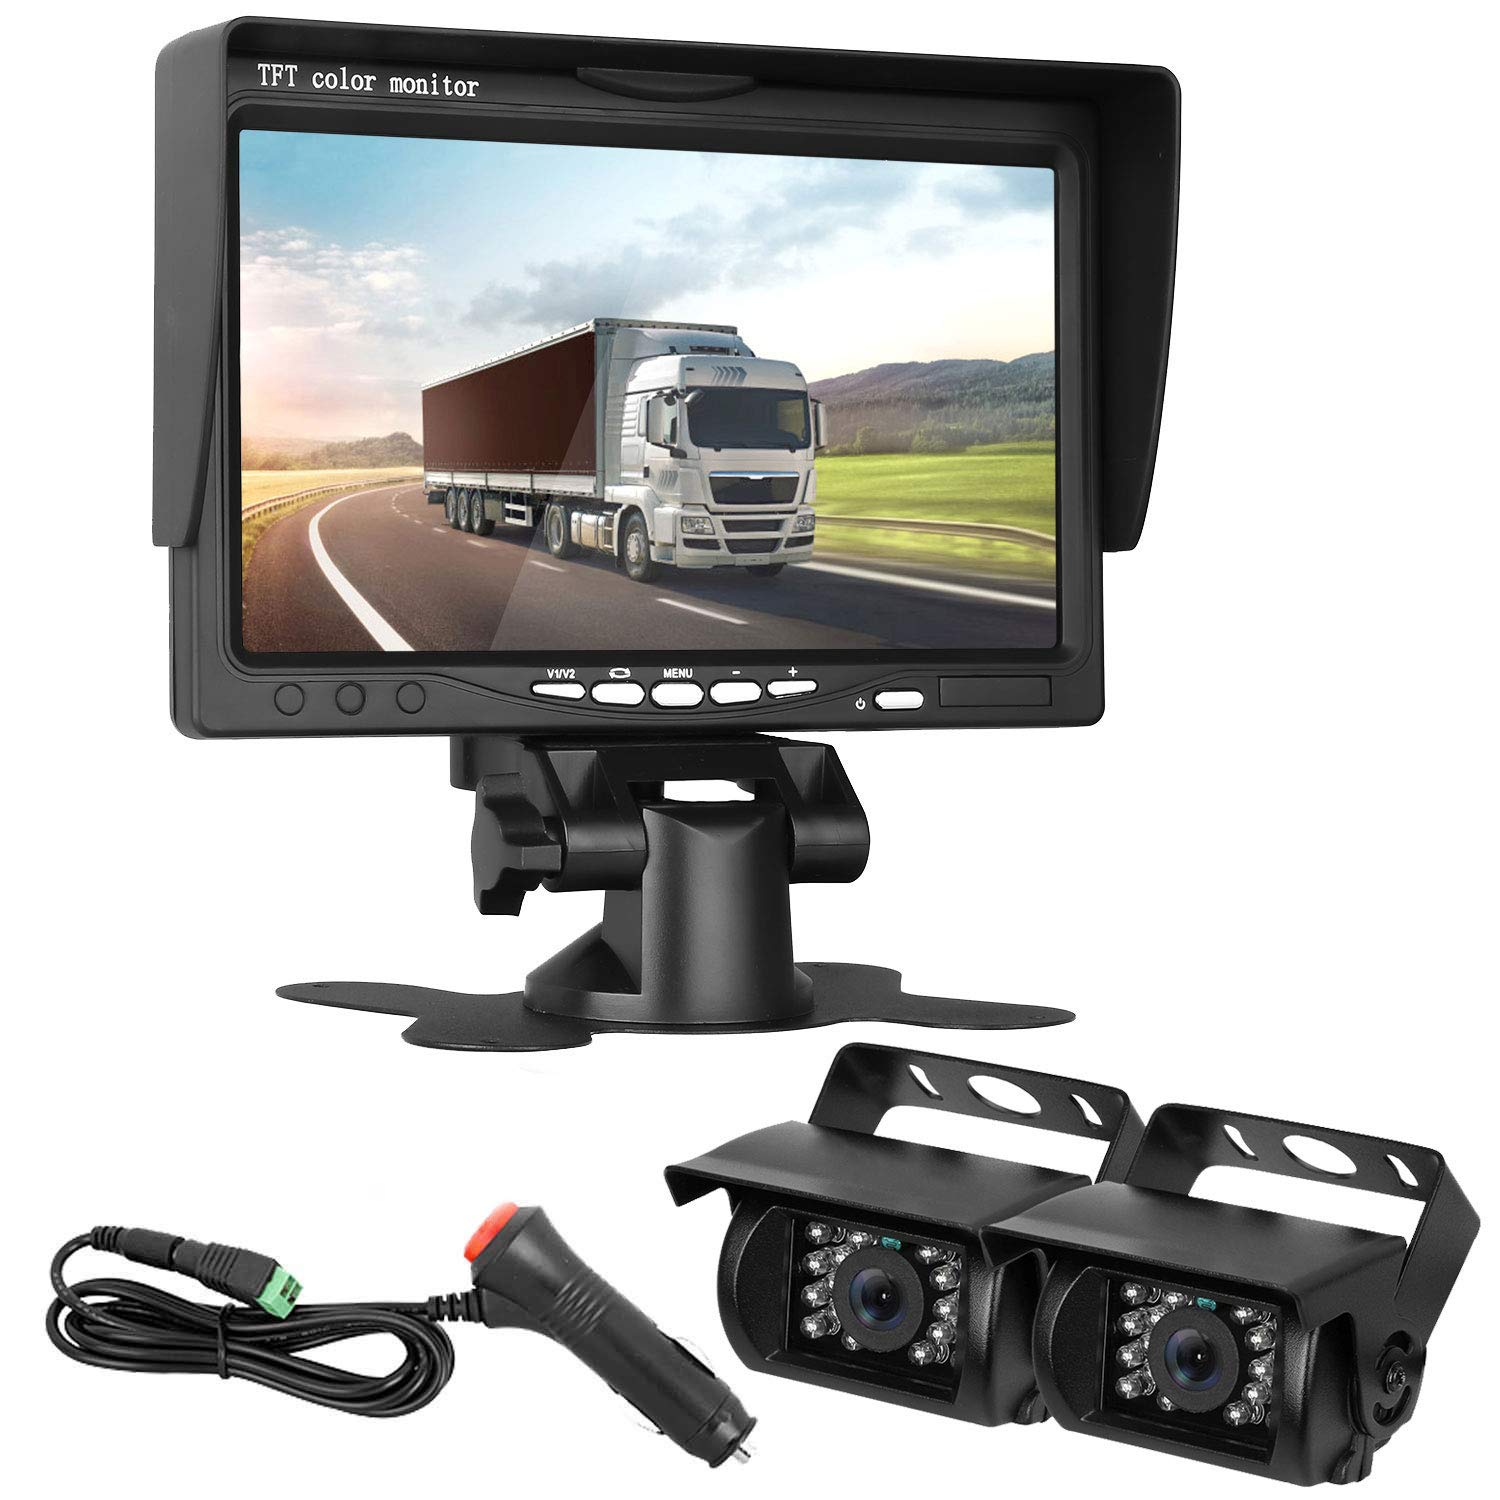 DohonesBest Dual Backup Cameras and 7'' LCD Monitor System Kit for Bus/Truck/Trailer/RV/Campers Night Vision IP68 Waterpoof with ON/Off Switch Guide Lines Normal/Mirrored Pictures Optional